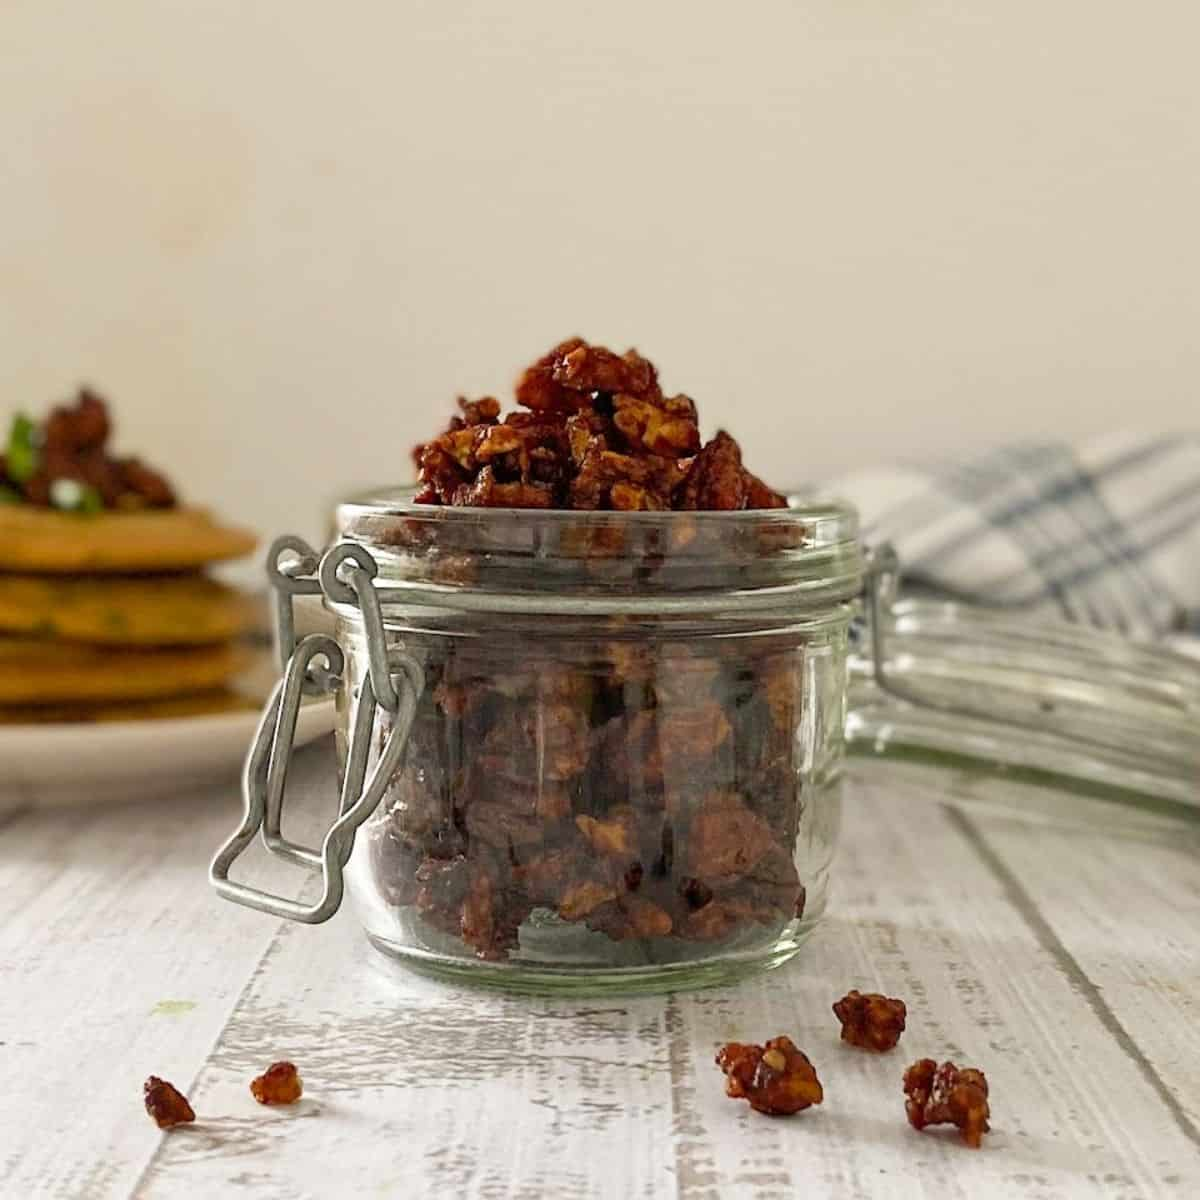 vegan bacon bits in glass jar with pancakes in the background.